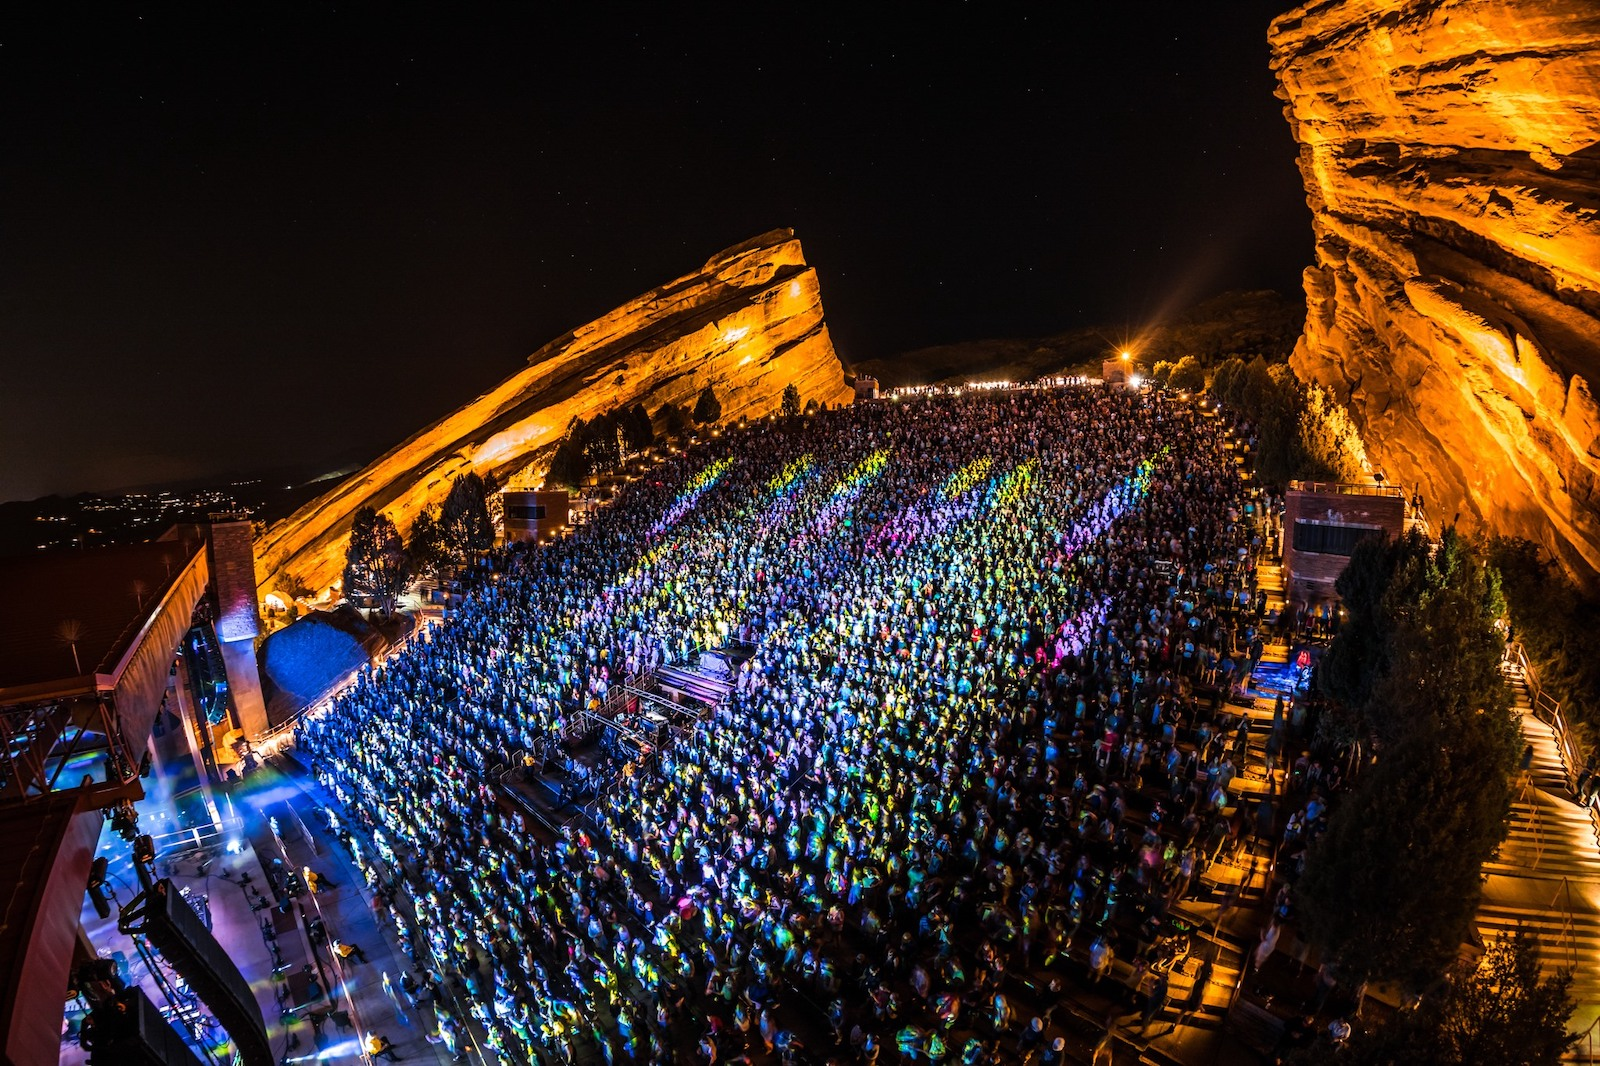 Image of the Red Rocks Amphitheater in Morrison, Colorado